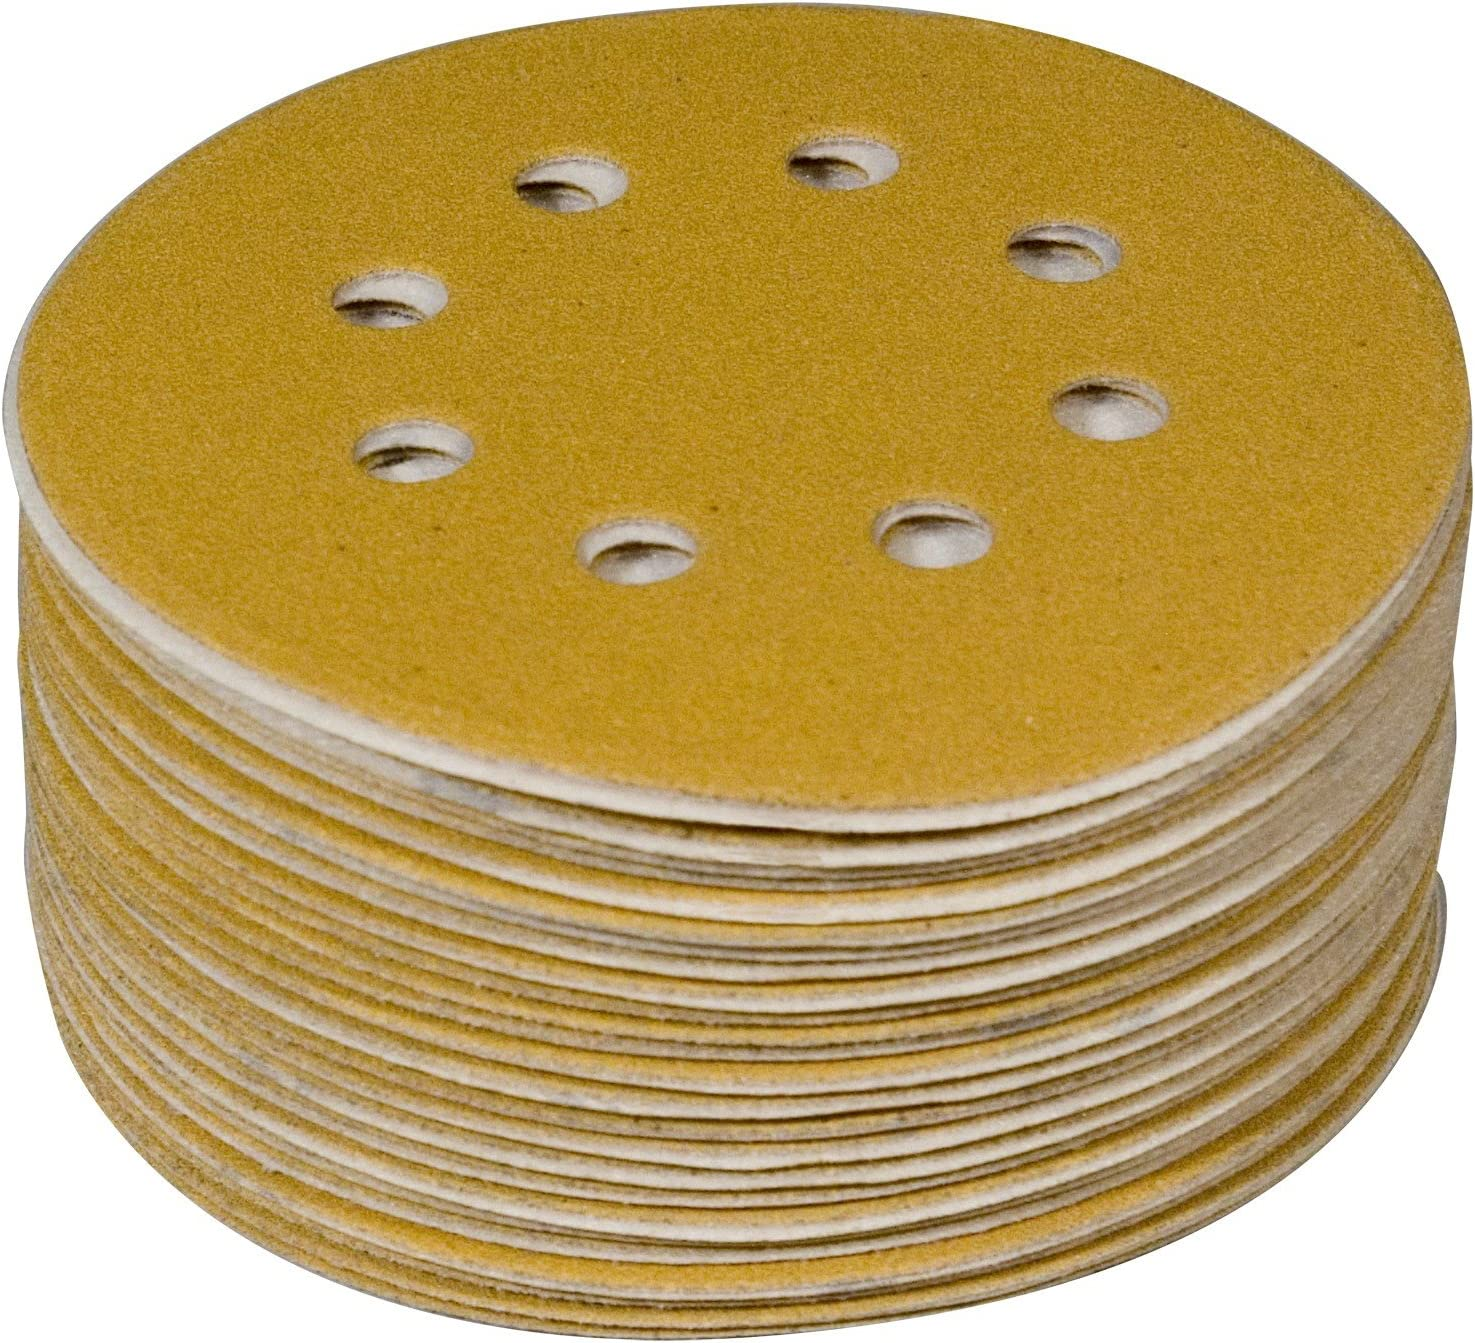 POWERTEC 44012G-50 Gold 5 Hook and Loop Sanding Disc | 8 Hole | 120 Grit – 50 Pack 81t8OvDHIEL